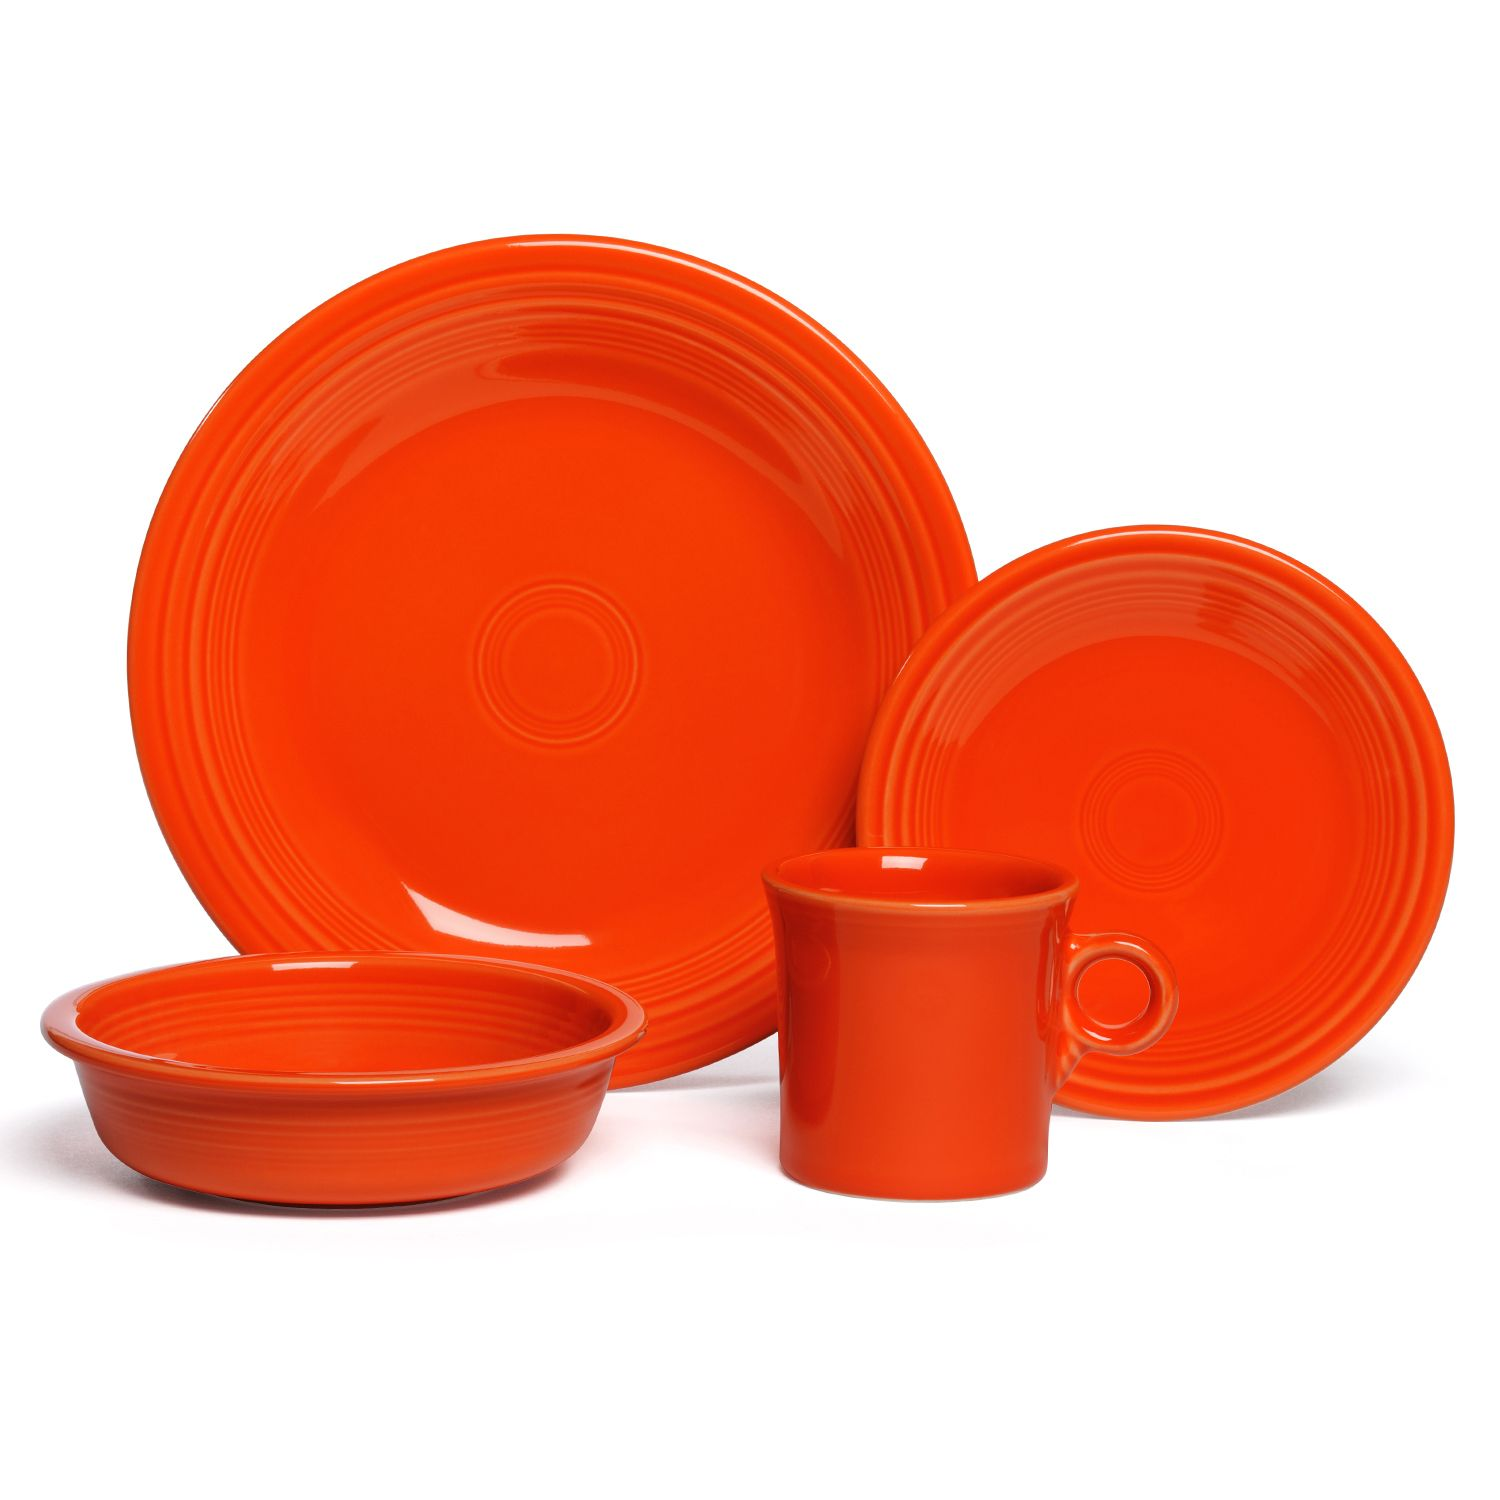 sc 1 st  Kohlu0027s & Fiesta 16-pc. Dinnerware Set